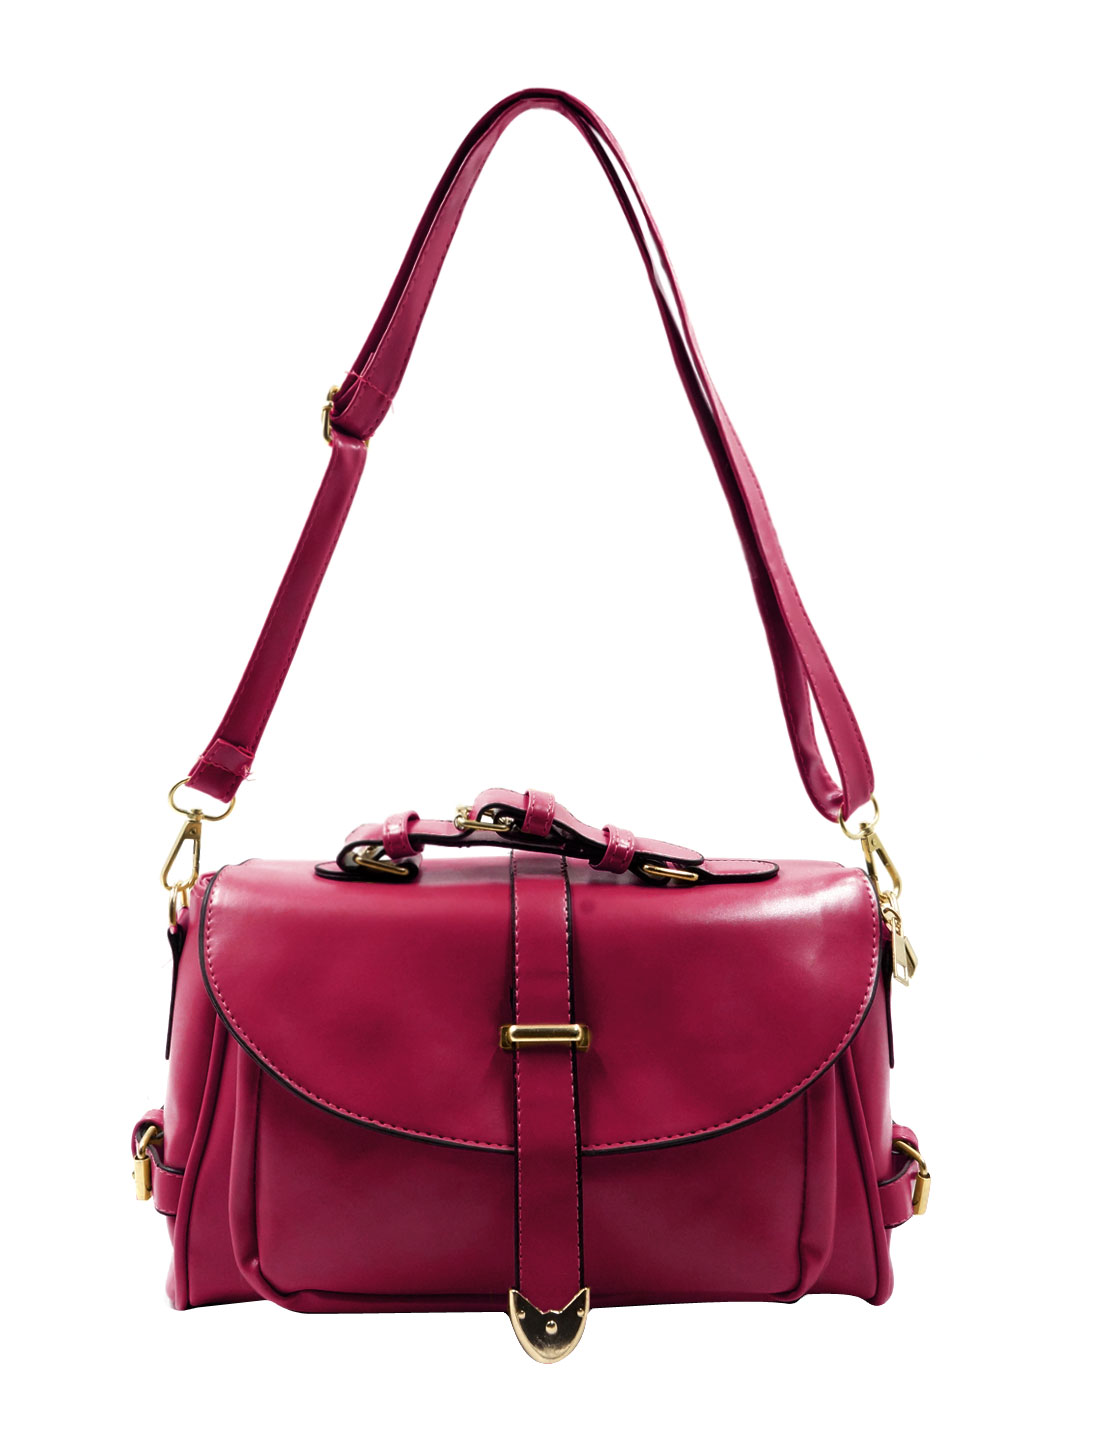 Woman Imiatation Leather Detachable Strap Crossbody Shoulder Bag Fuchsia